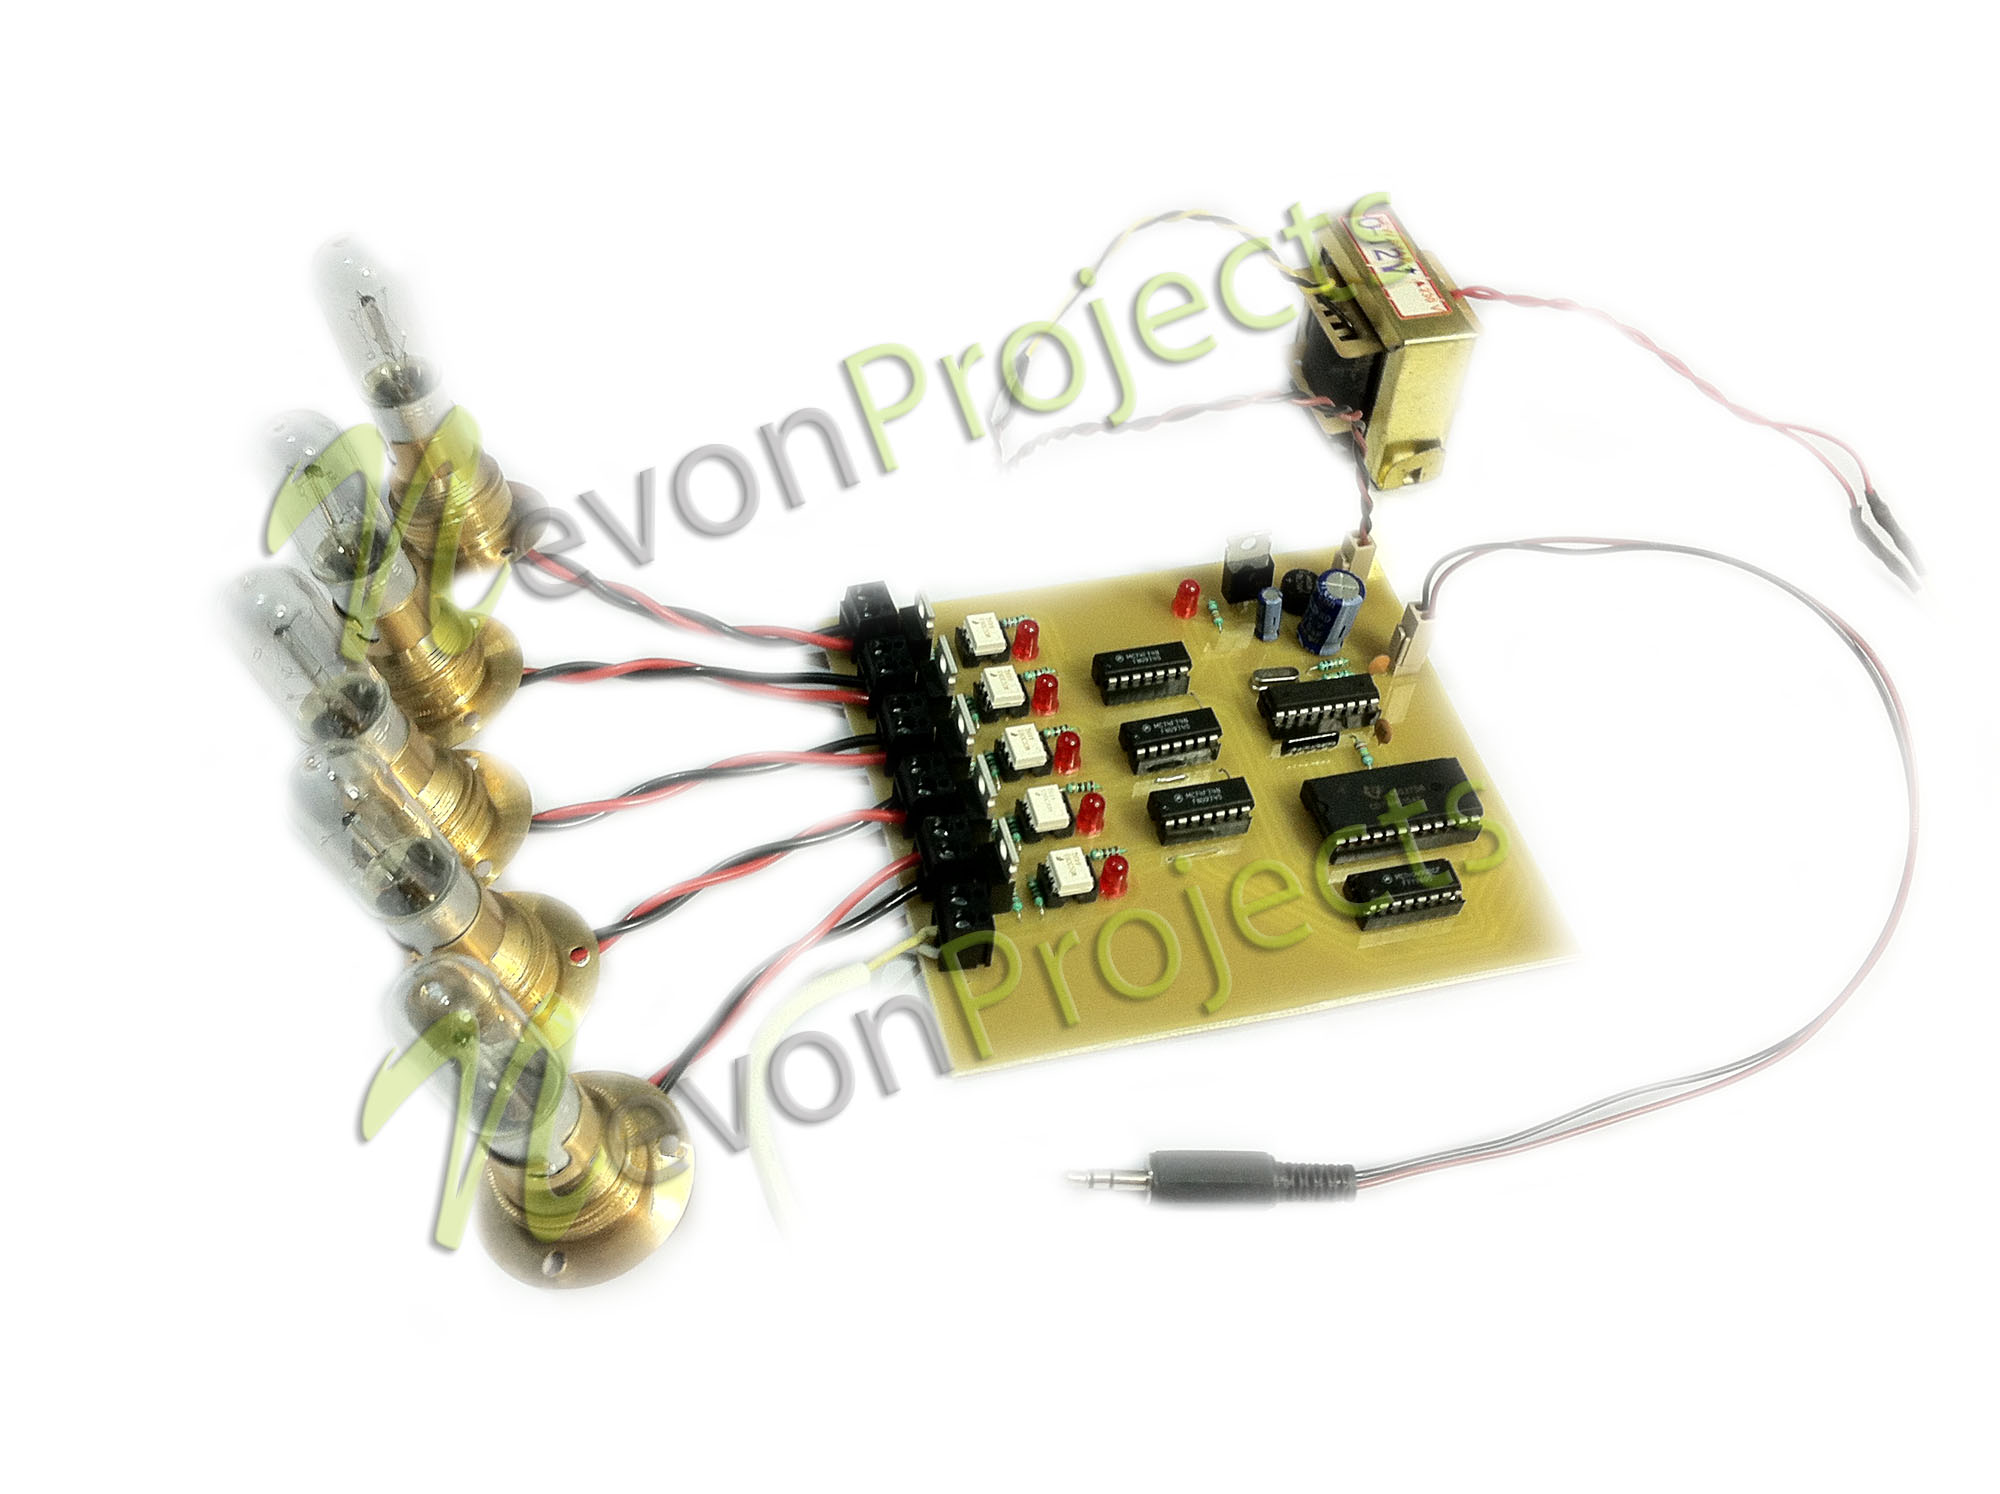 Digitally Controlled Home Automation Project NevonProjects